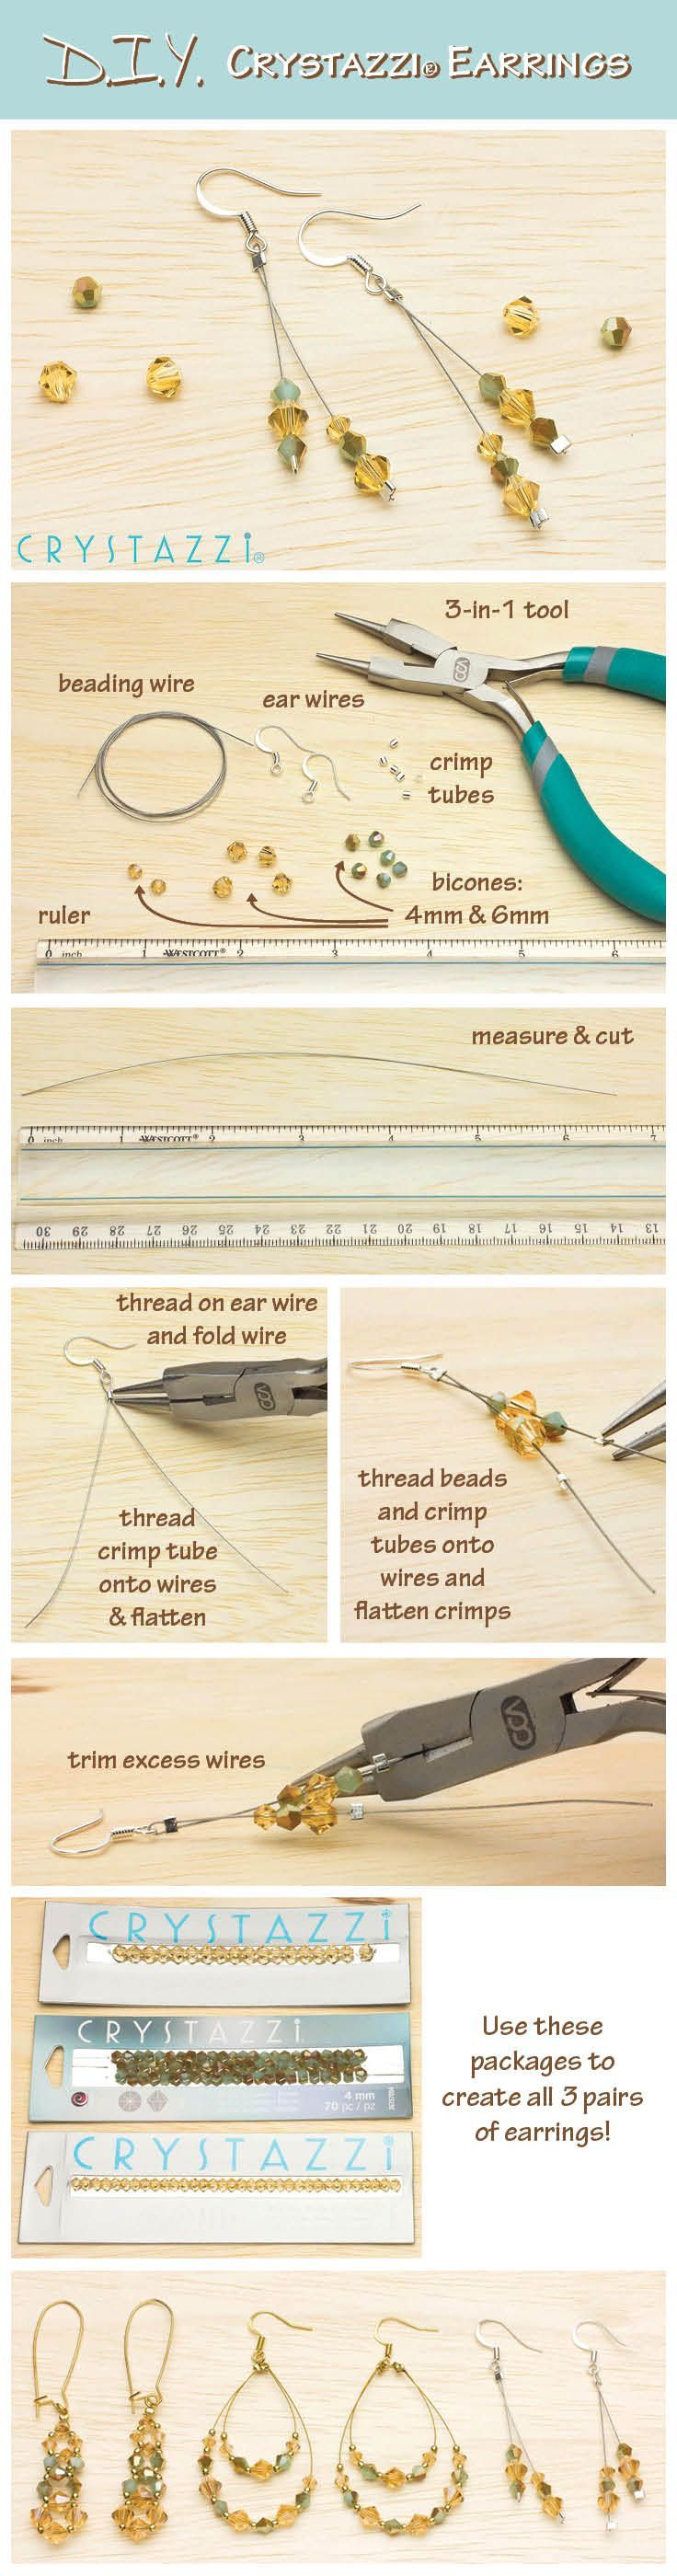 Crystazzi Earrings DIY Crystal Jewelry, DIY Crystal Jewelry – create earrings in three styles to coordinate with any outfit.